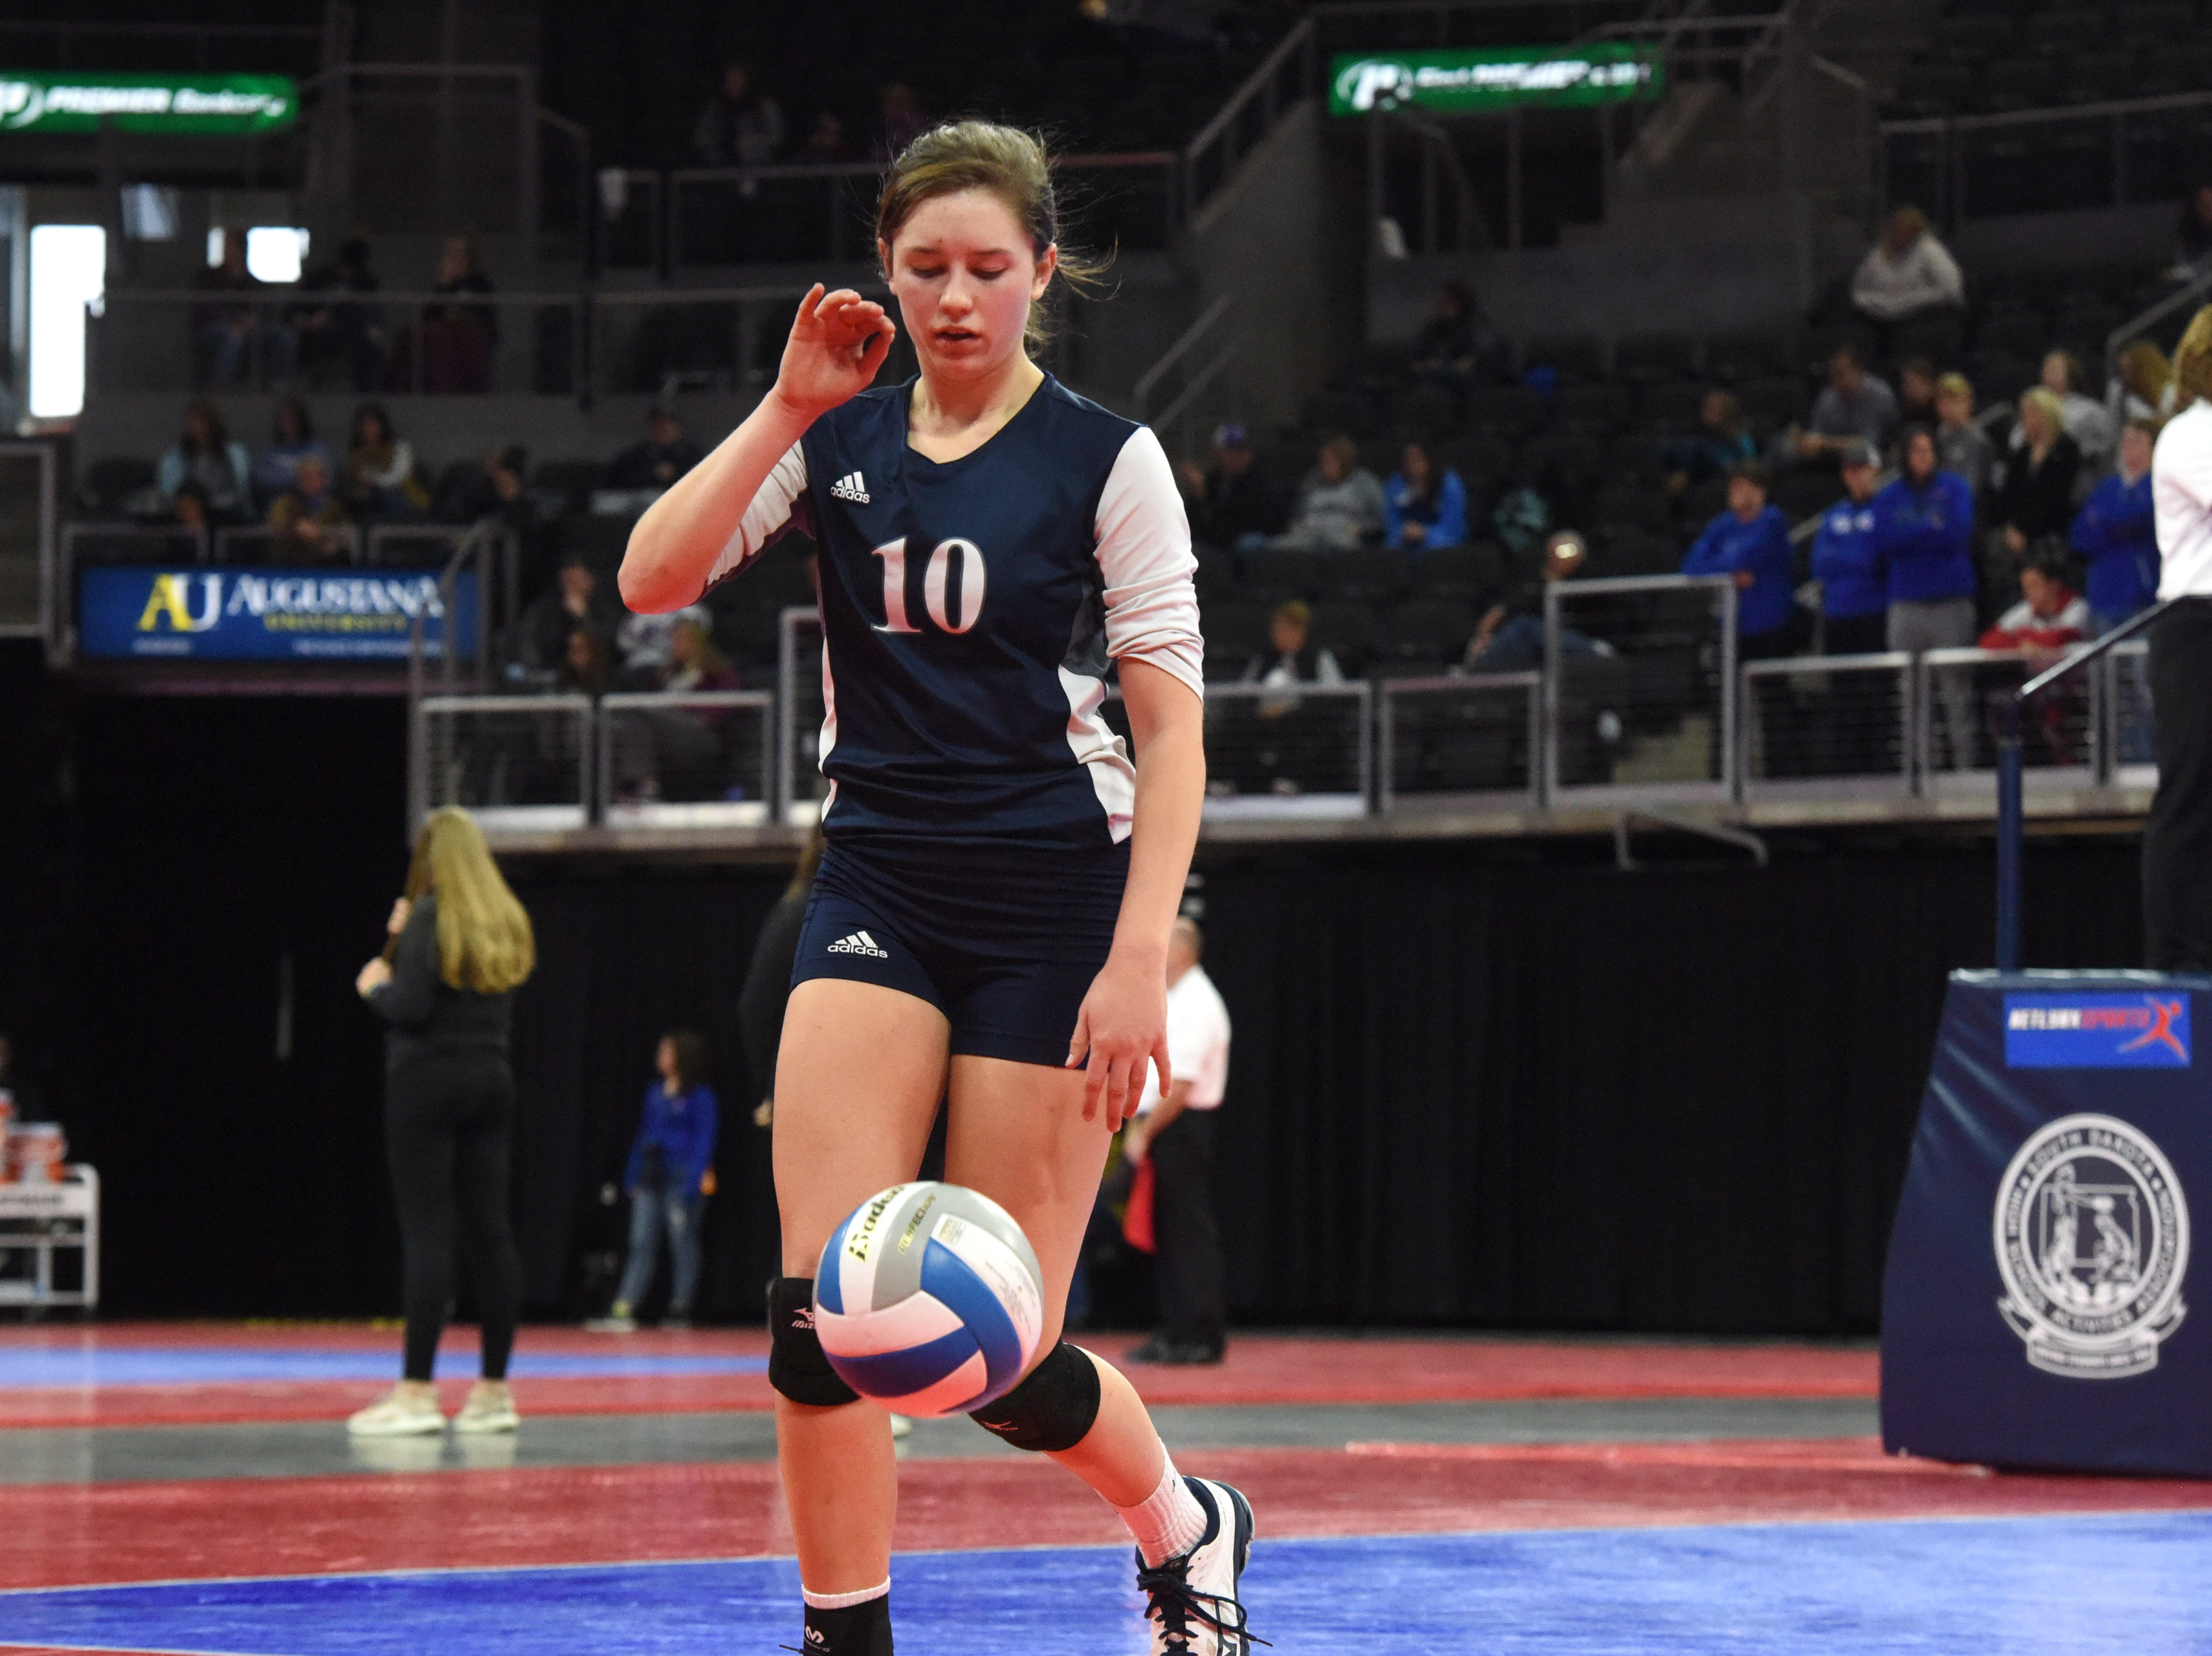 Burke's Bobbi Jo Wischmann (10) prepares to serve the ball during a match against Ethan, Friday, Nov. 16, 2018, at the Denny Sanford Premier Center in Sioux Falls, S.D.